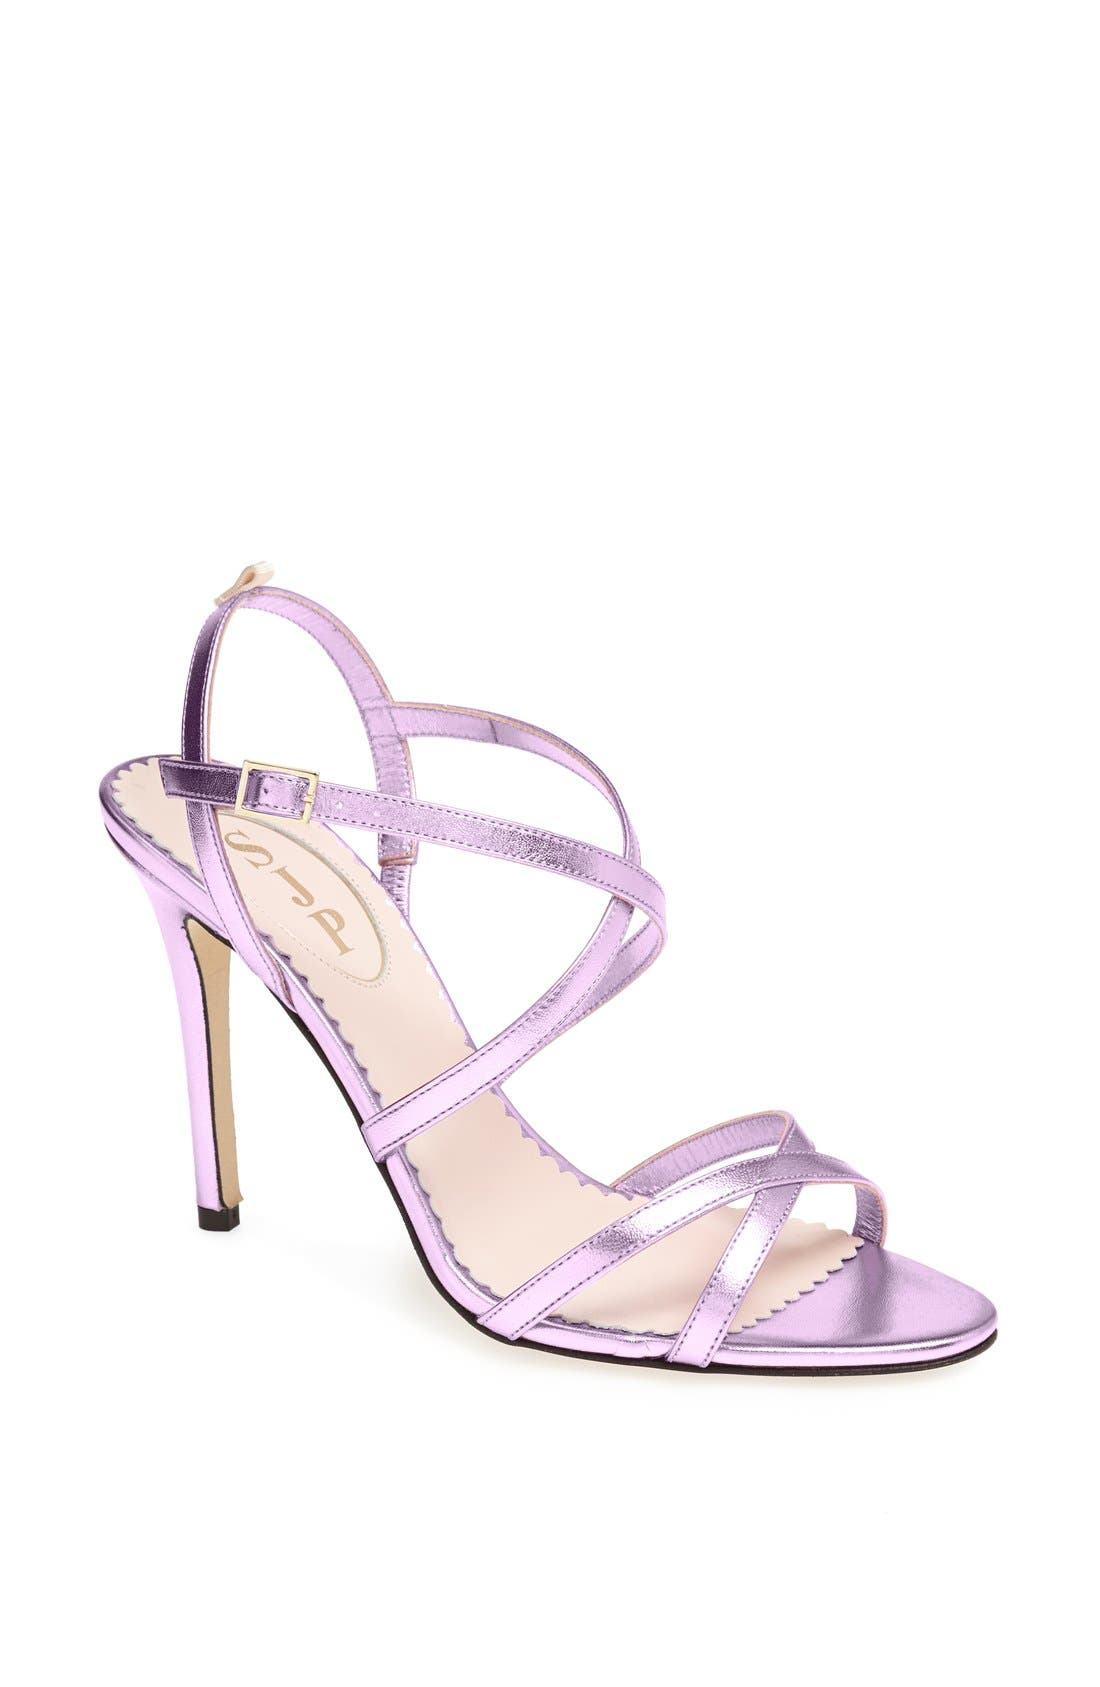 Main Image - SJP 'Jill' Sandal (Nordstrom Exclusive)